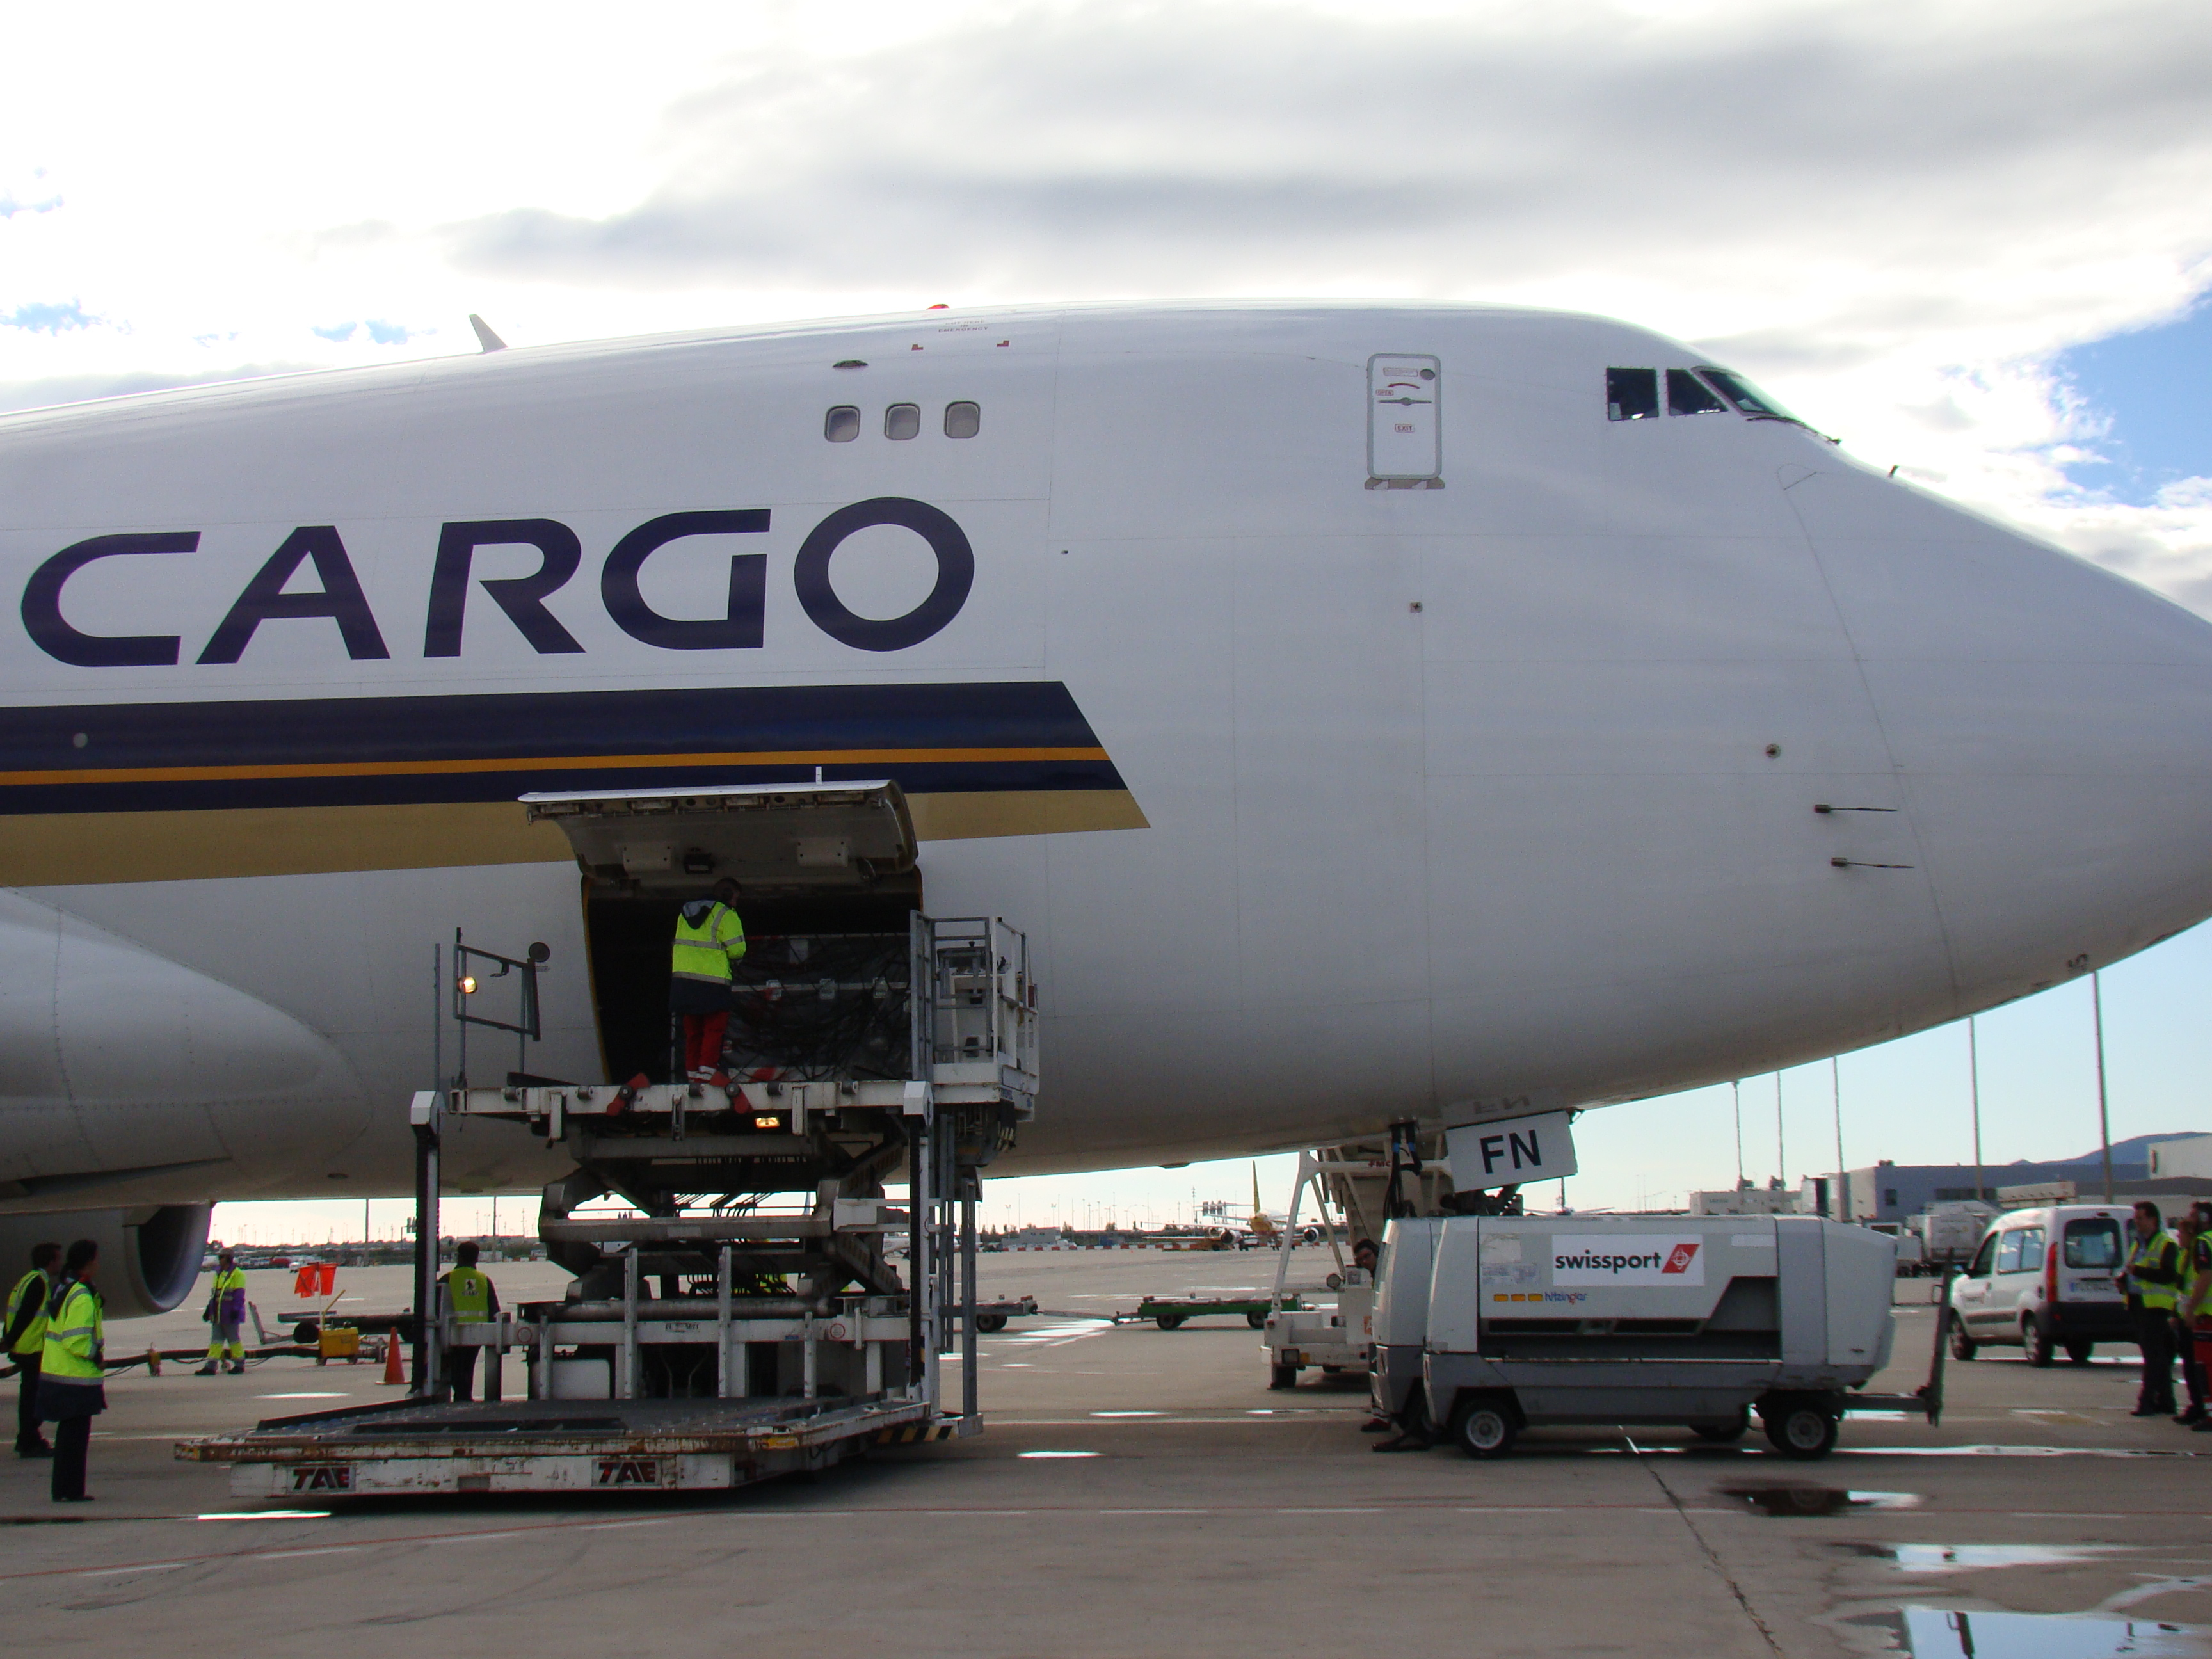 airport security air cargo Terror concerns prompt stricter tsa scrutiny of air cargo from five mostly muslim countries additional security measures for air cargo.